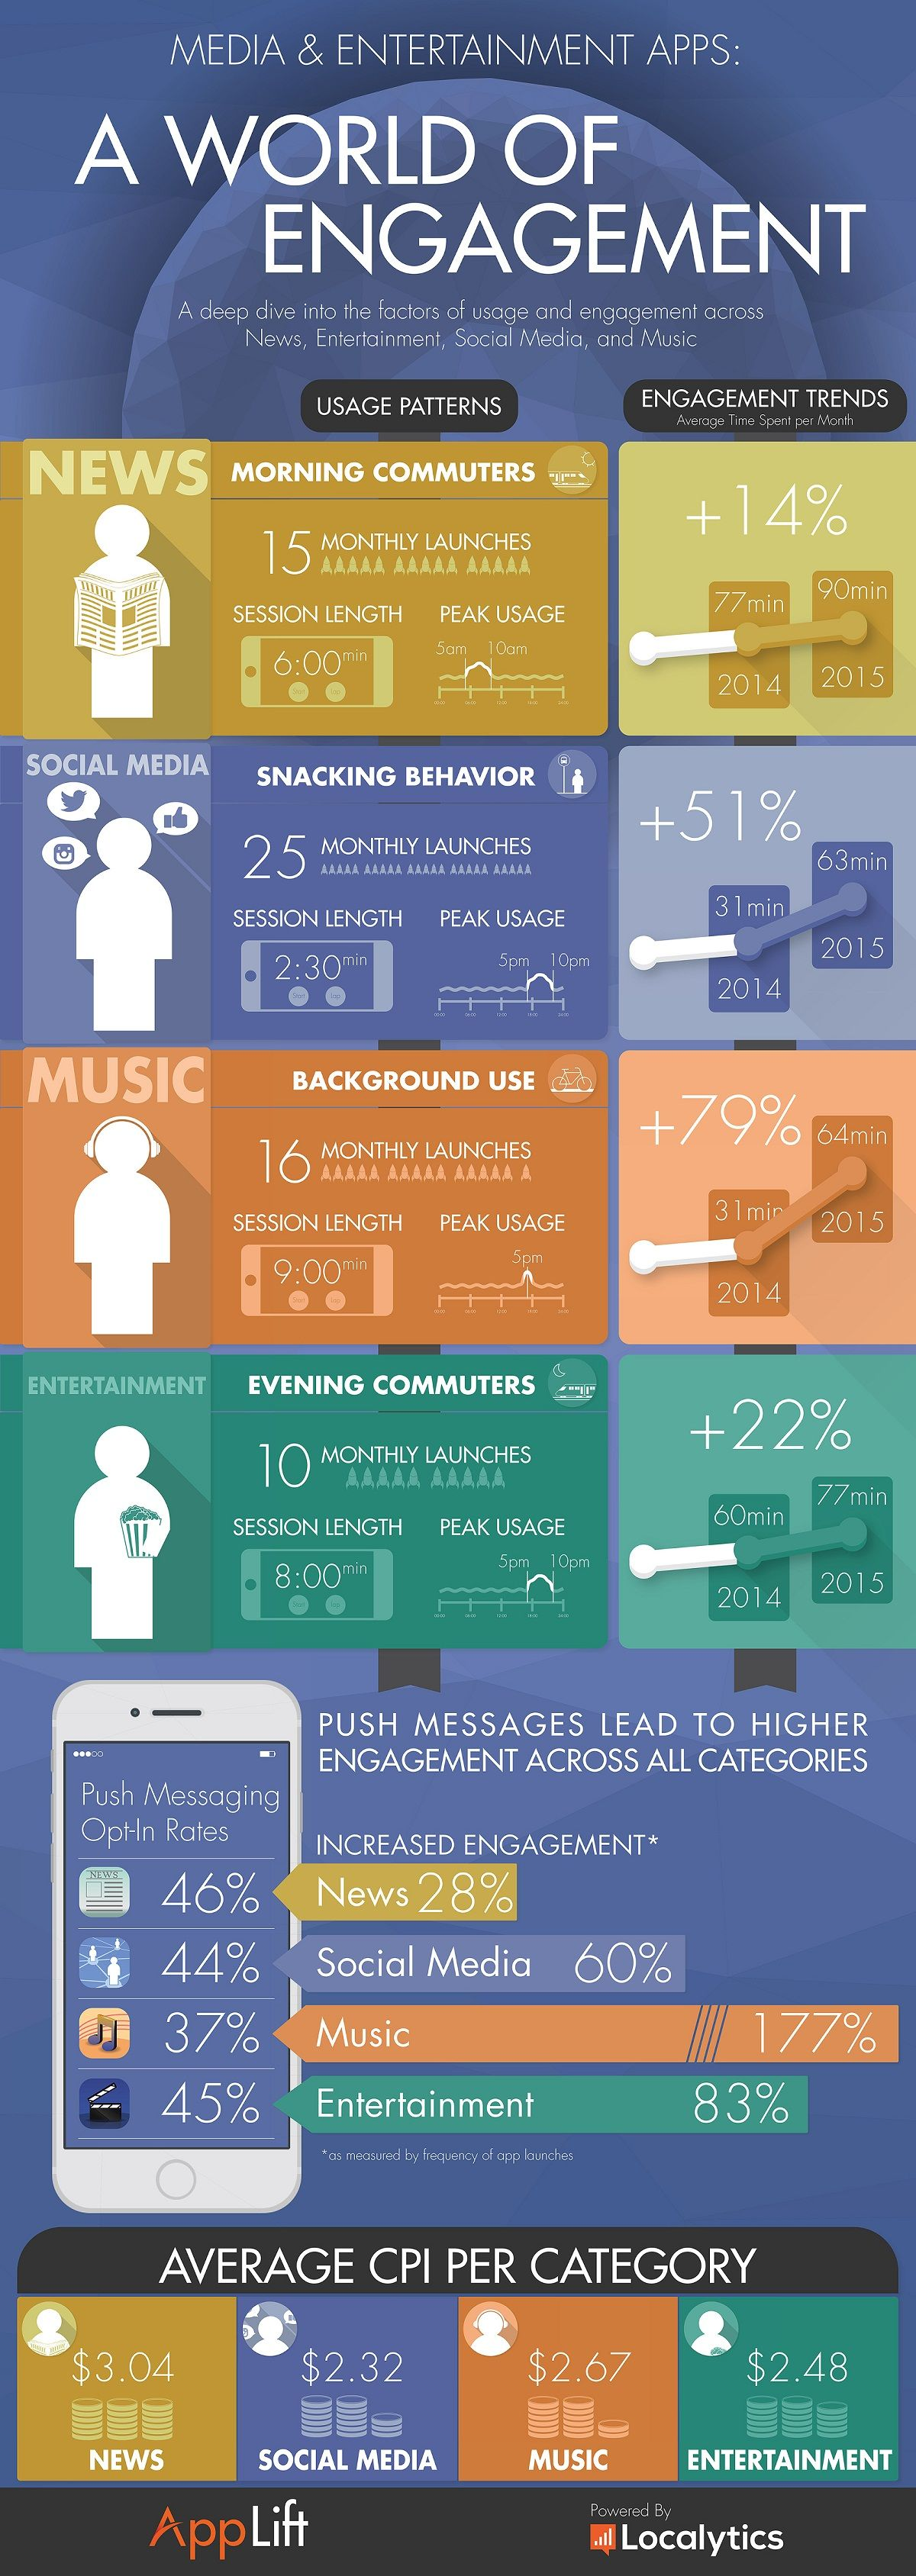 Media and Entertainment Apps: A World of Engagement